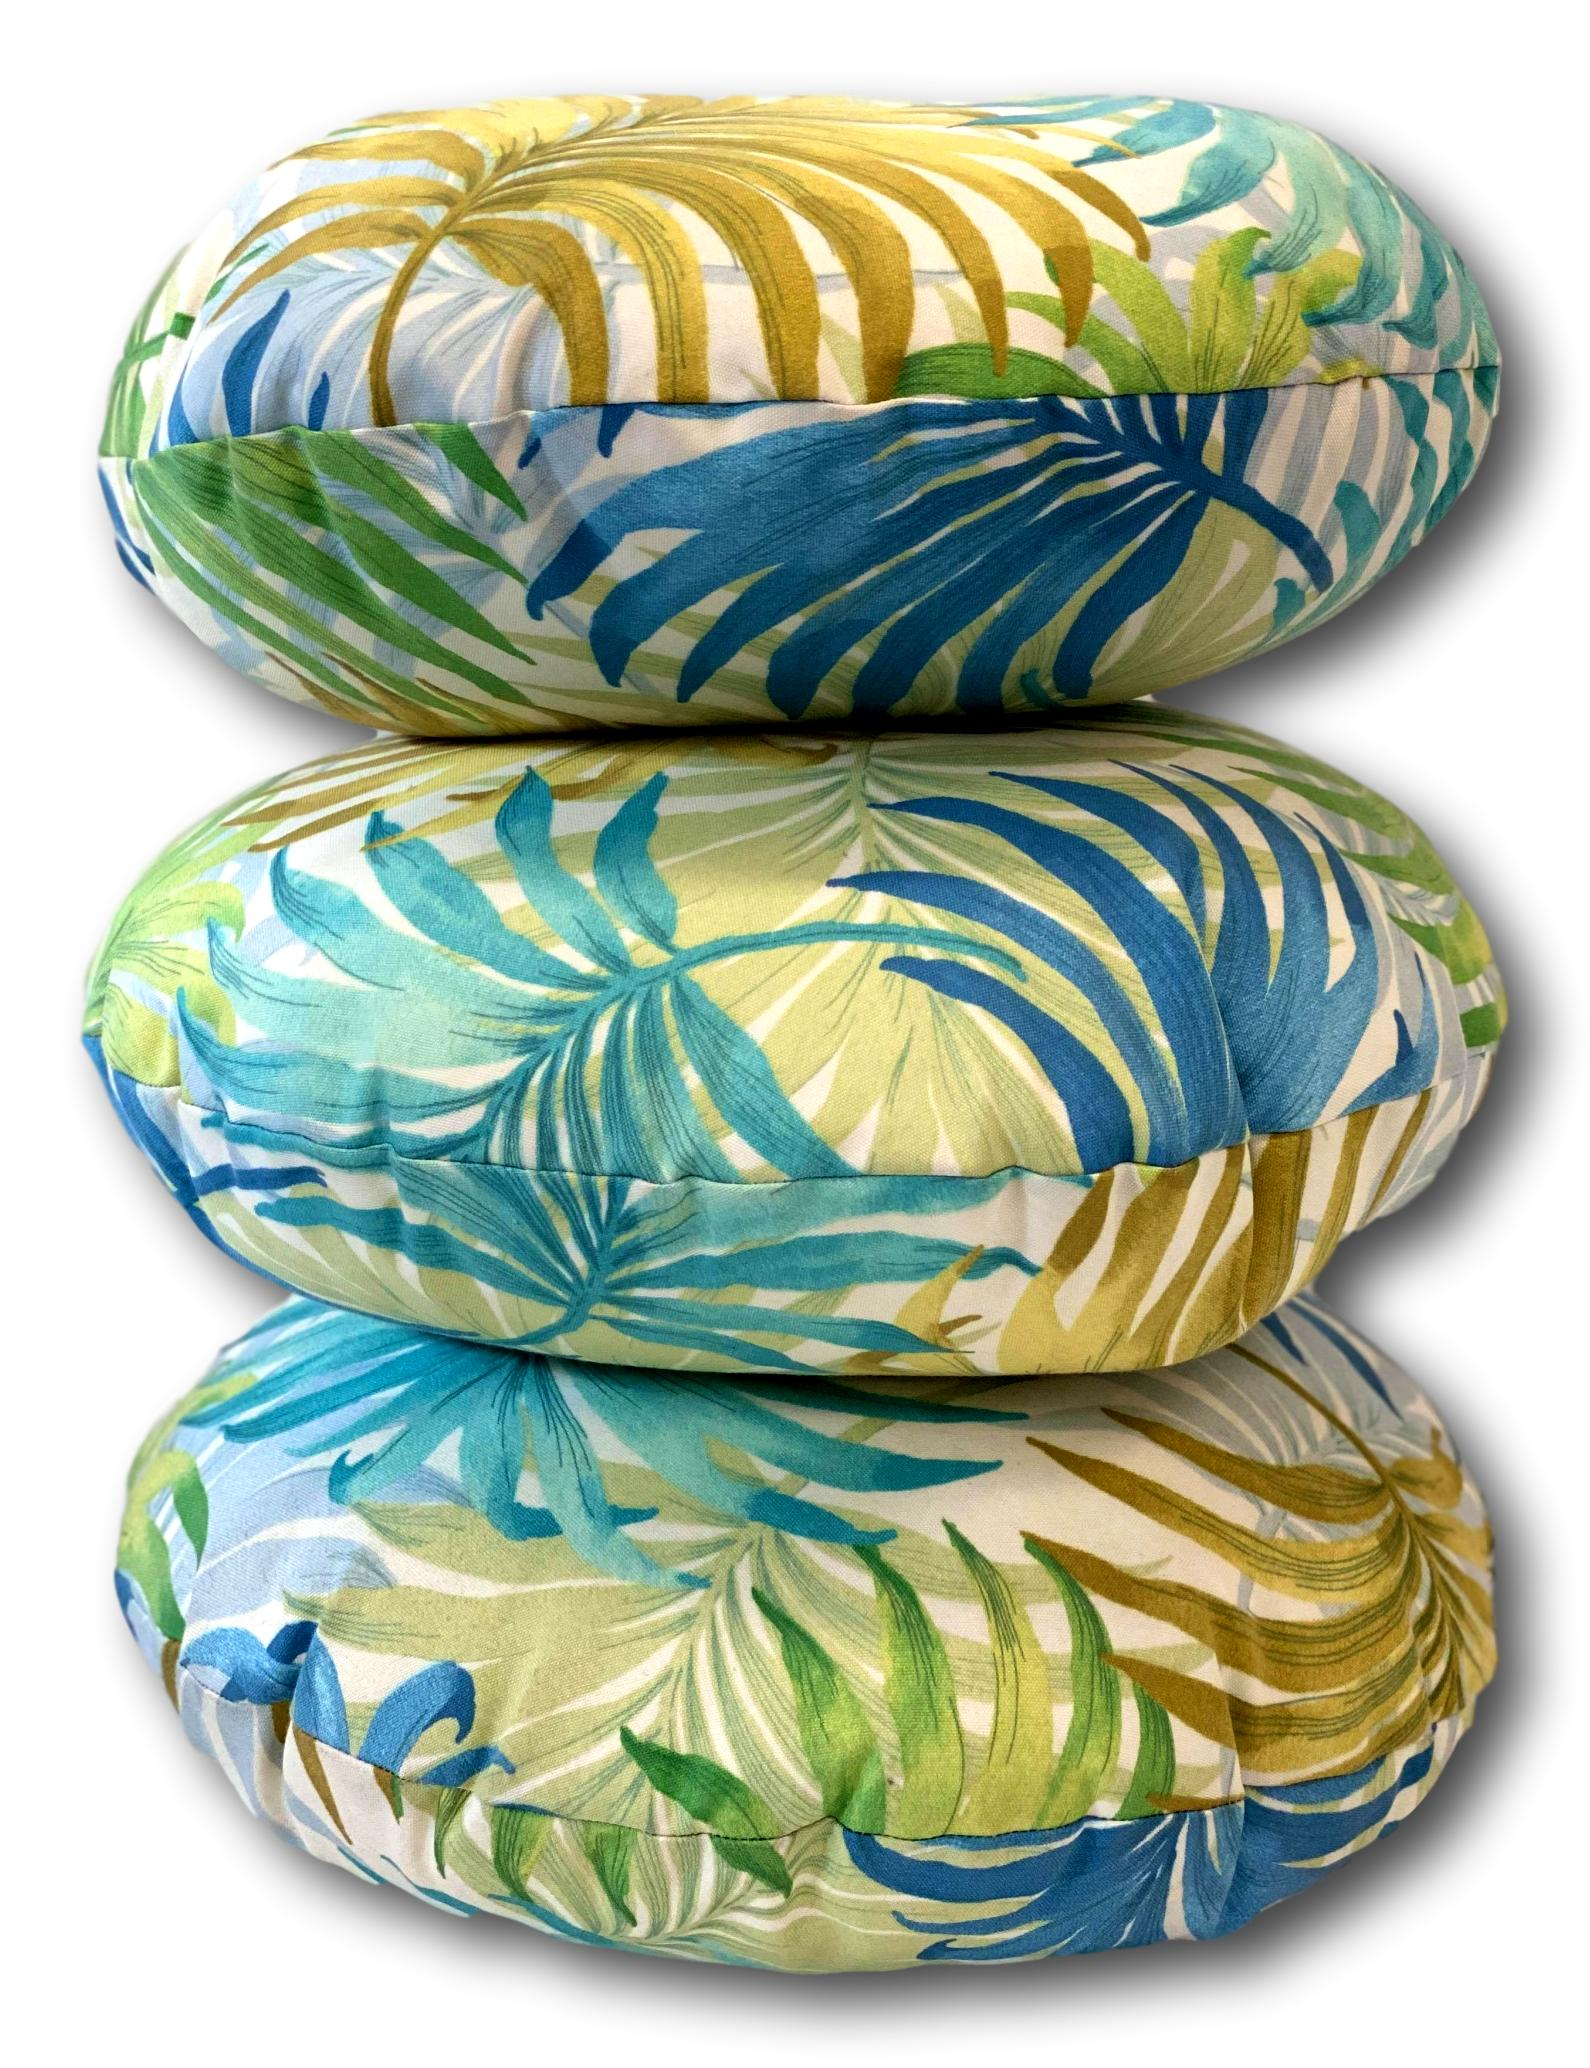 Sunshine Palm 50cm Playful Round - Only 2 left